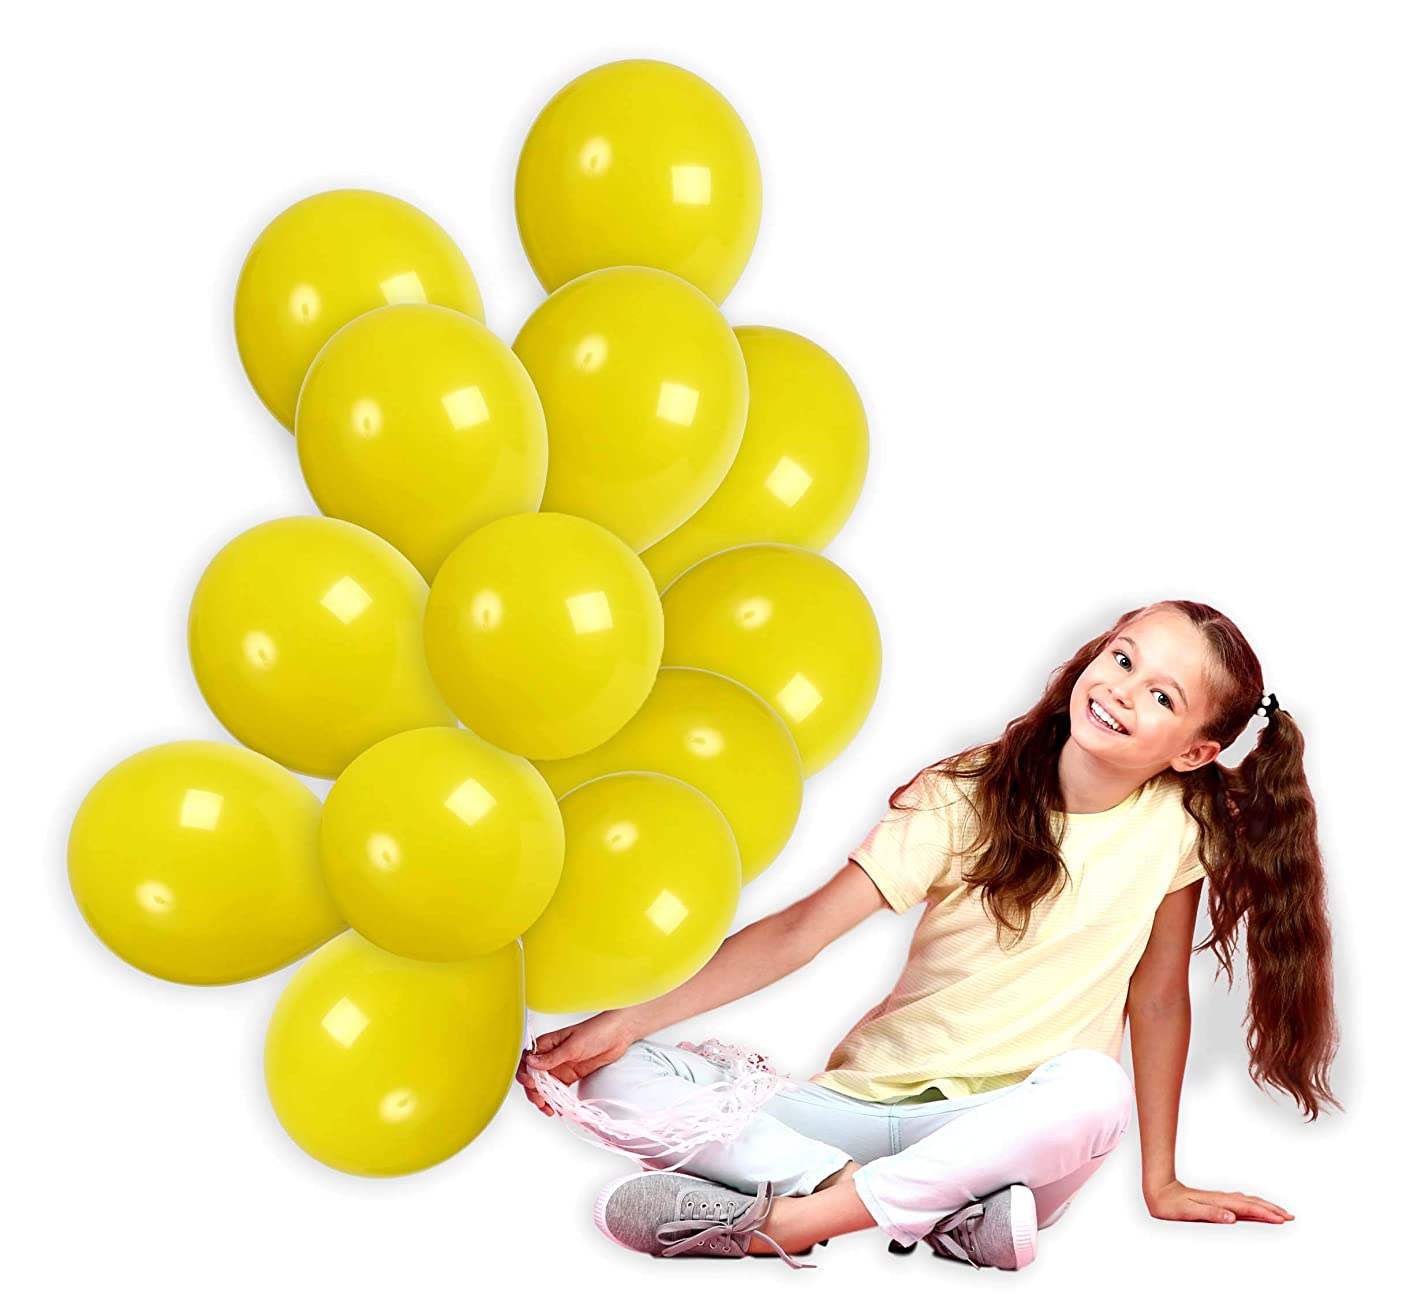 Treasures Gifted 12 Inch Yellow Solid Latex Premium Quality Balloons Bouquet for Variety Baby Showers Cocktail Birthdays Lucky Fairytale Weddings Topical Lemon Fiestas Party Supplies (36 Pack)